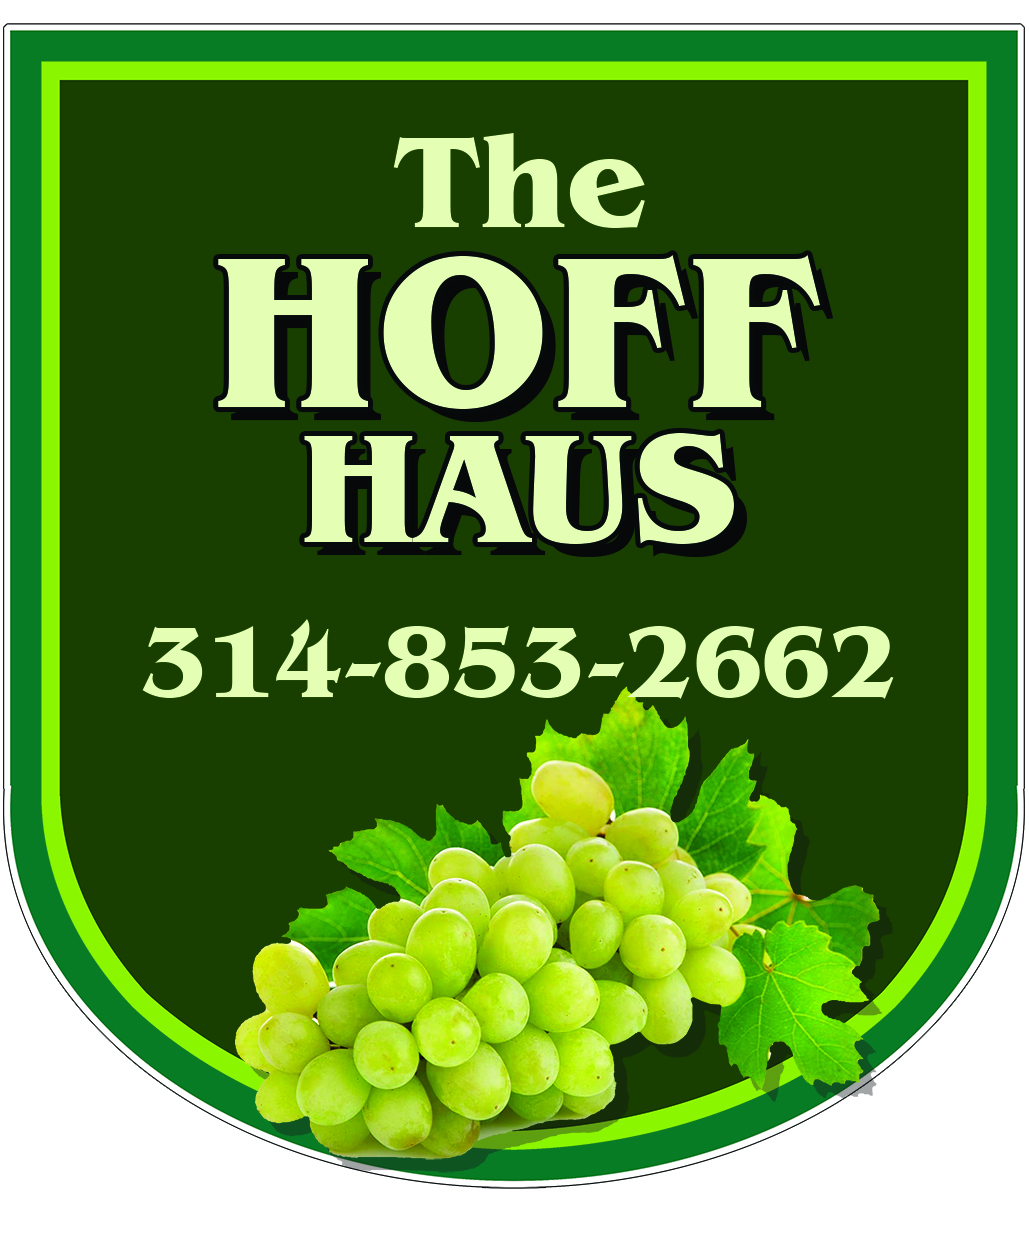 The Hoff Haus